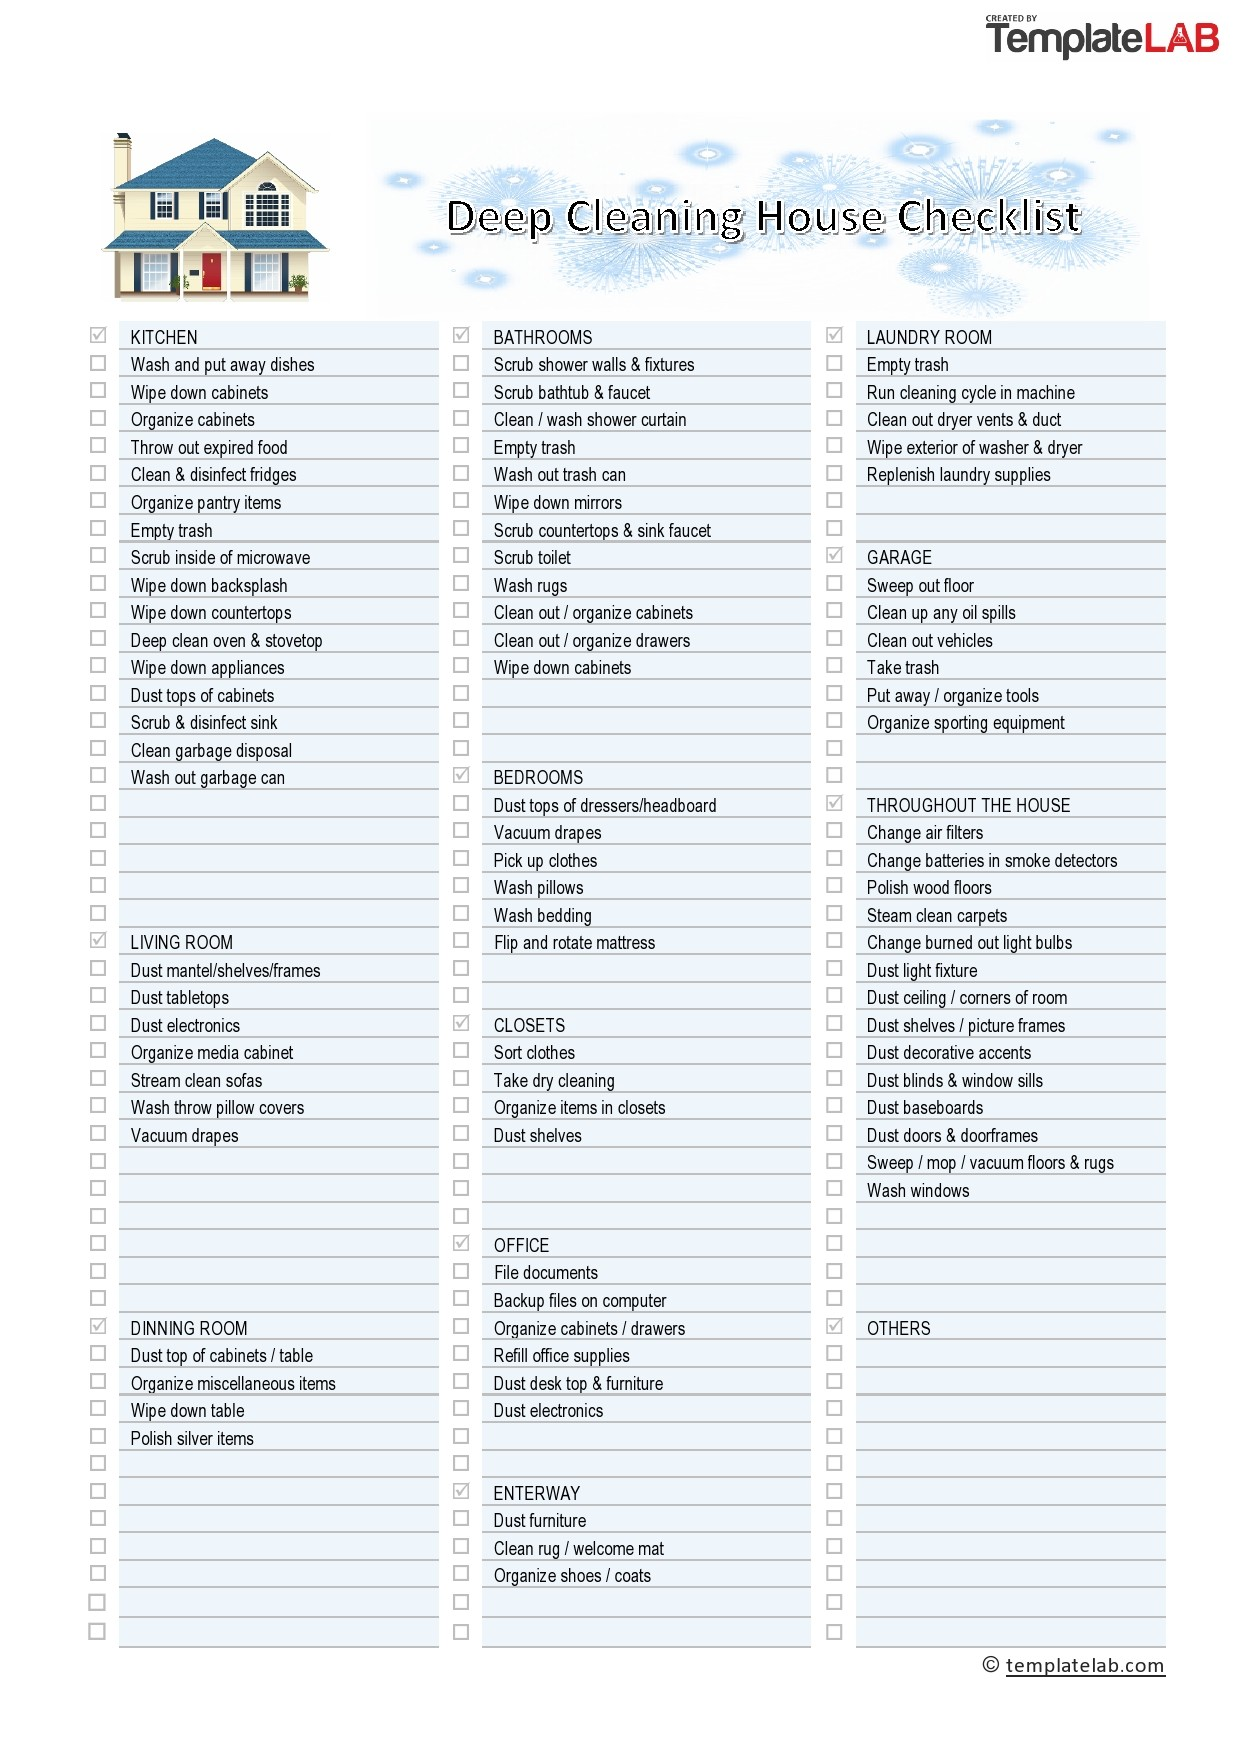 Free Deep Cleaning House Checklist - TemplateLab